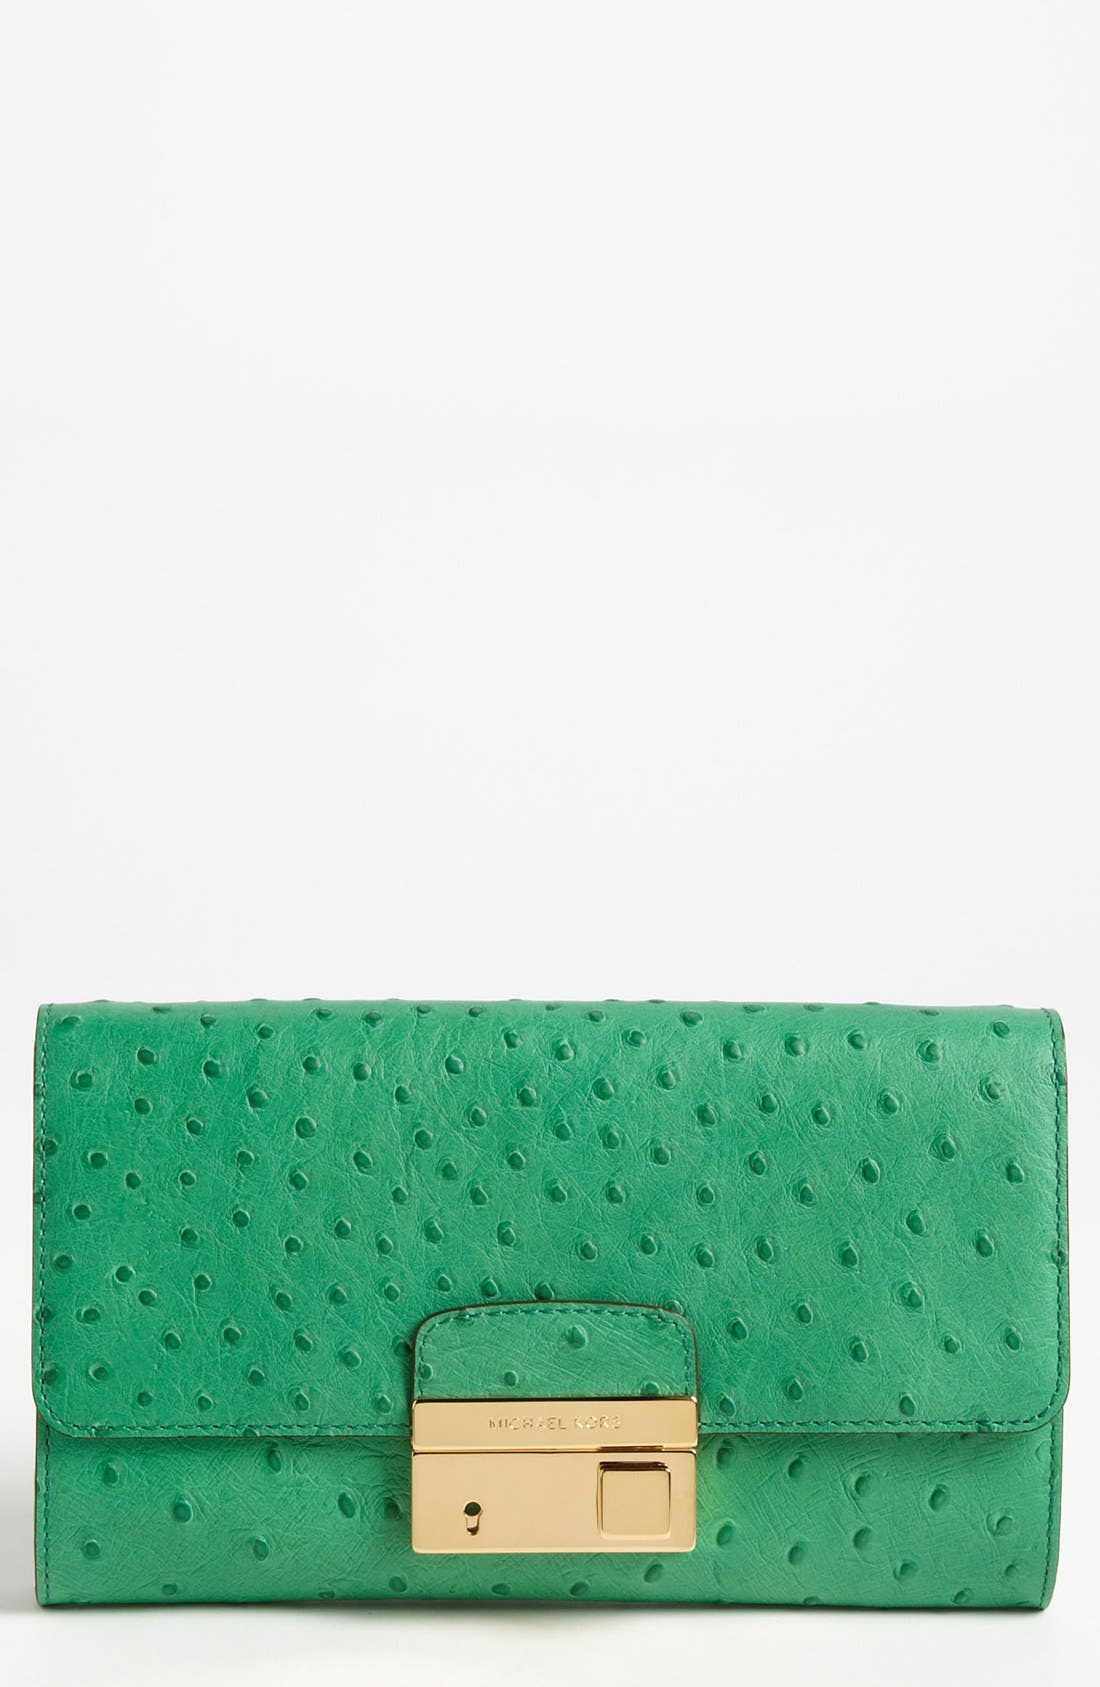 Main Image - Michael Kors 'Gia' Ostrich Embossed Clutch